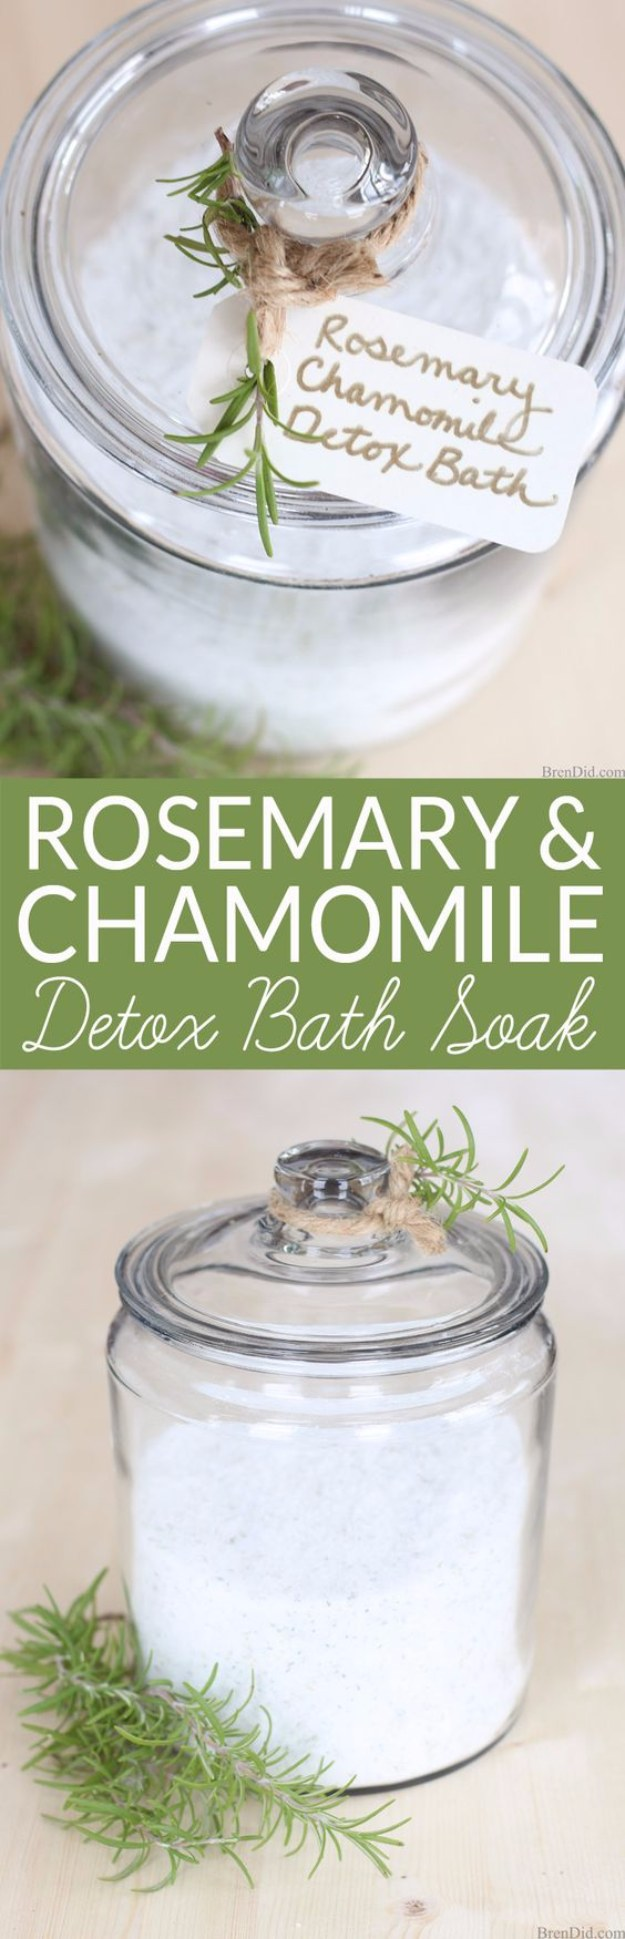 DIY Detox Recipes, Ideas and Tips - Rosemary Chamomile Detox Bath Soak - How to Detox Your Body, Brain and Skin for Health and Weight Loss. Detox Drinks, Waters, Teas, Wraps, Soup, Masks and Skincare Products You Can Make At Home http://diyjoy.com/diy-detox-ideas